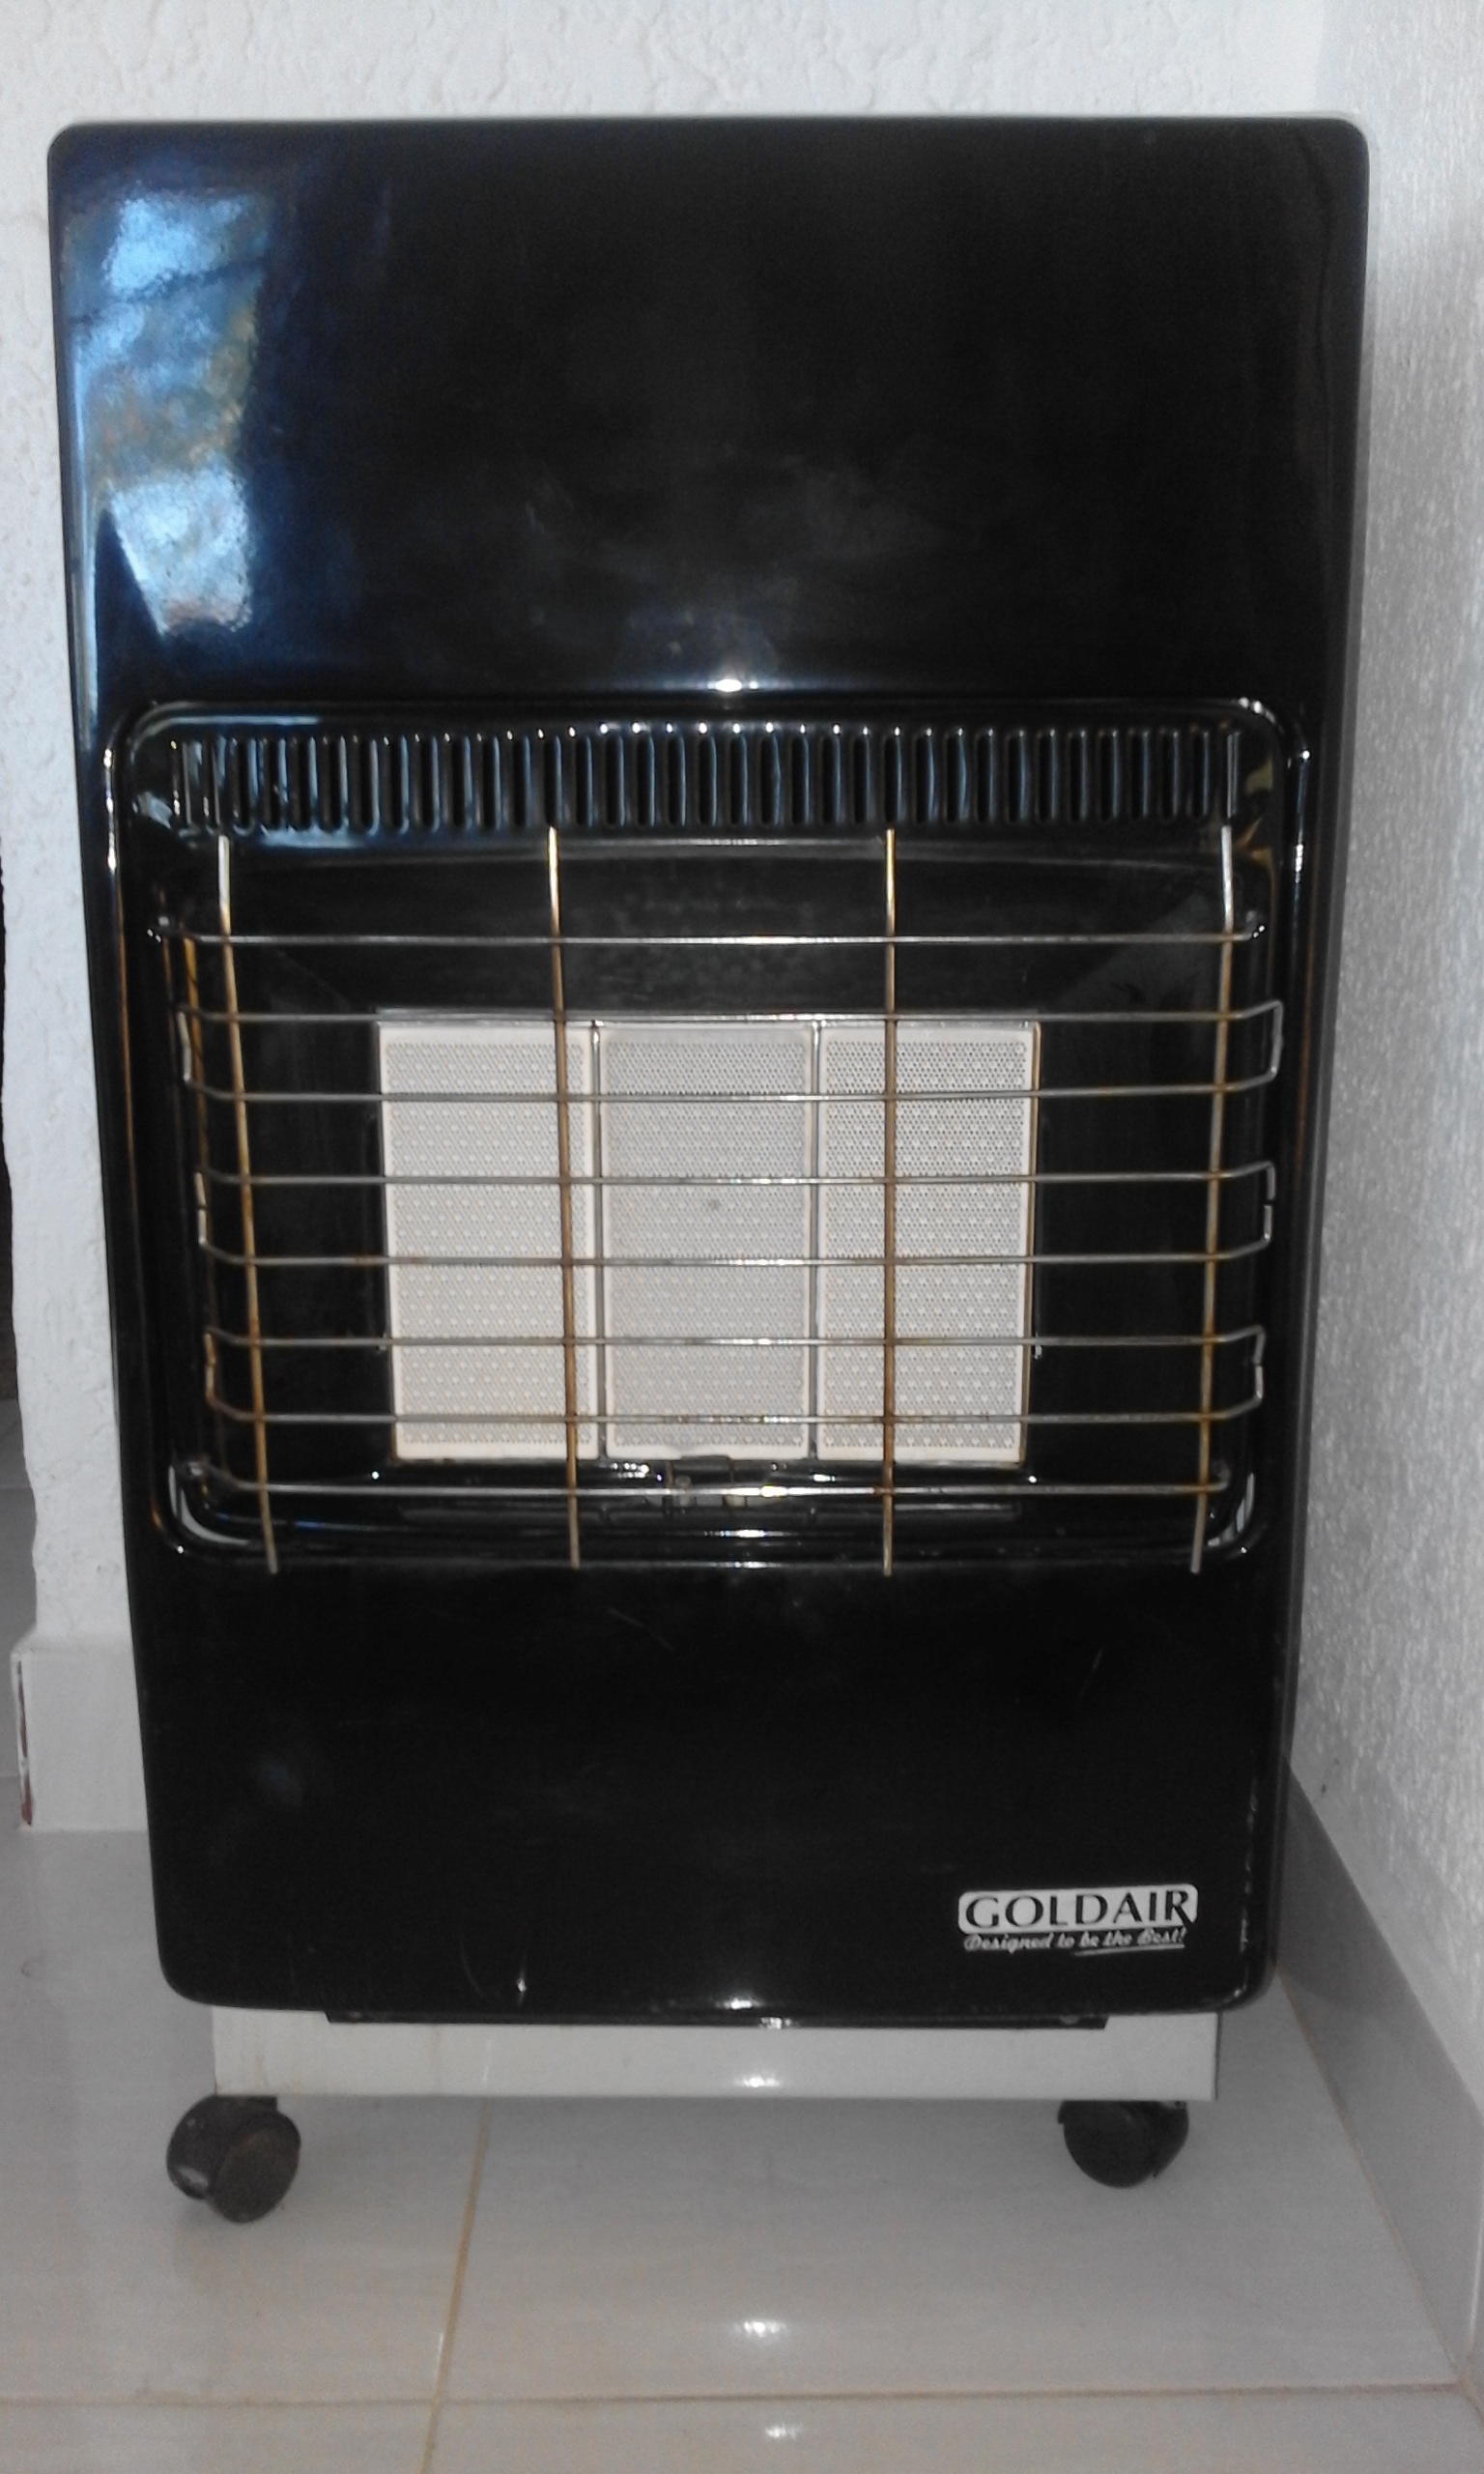 Gas Heater Goldair Top of the range